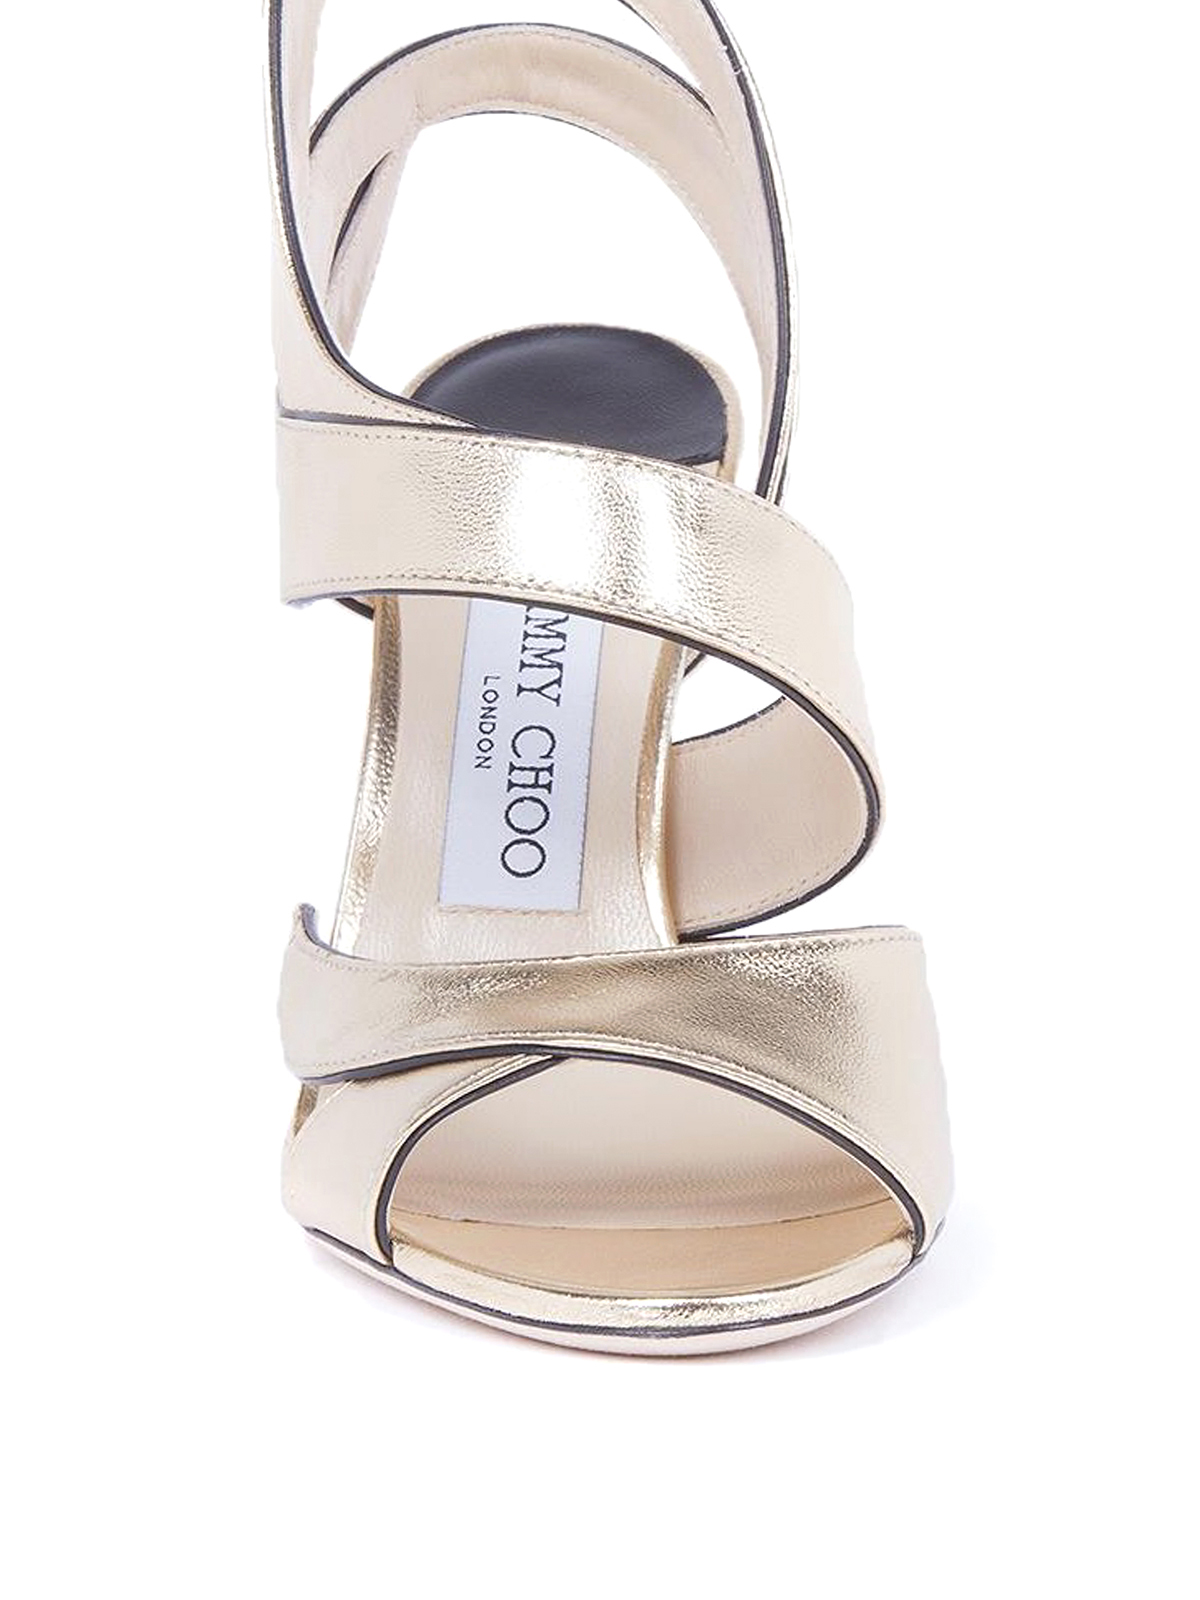 Jimmy Choo - Falcon 100 mirror leather sandals - صندل